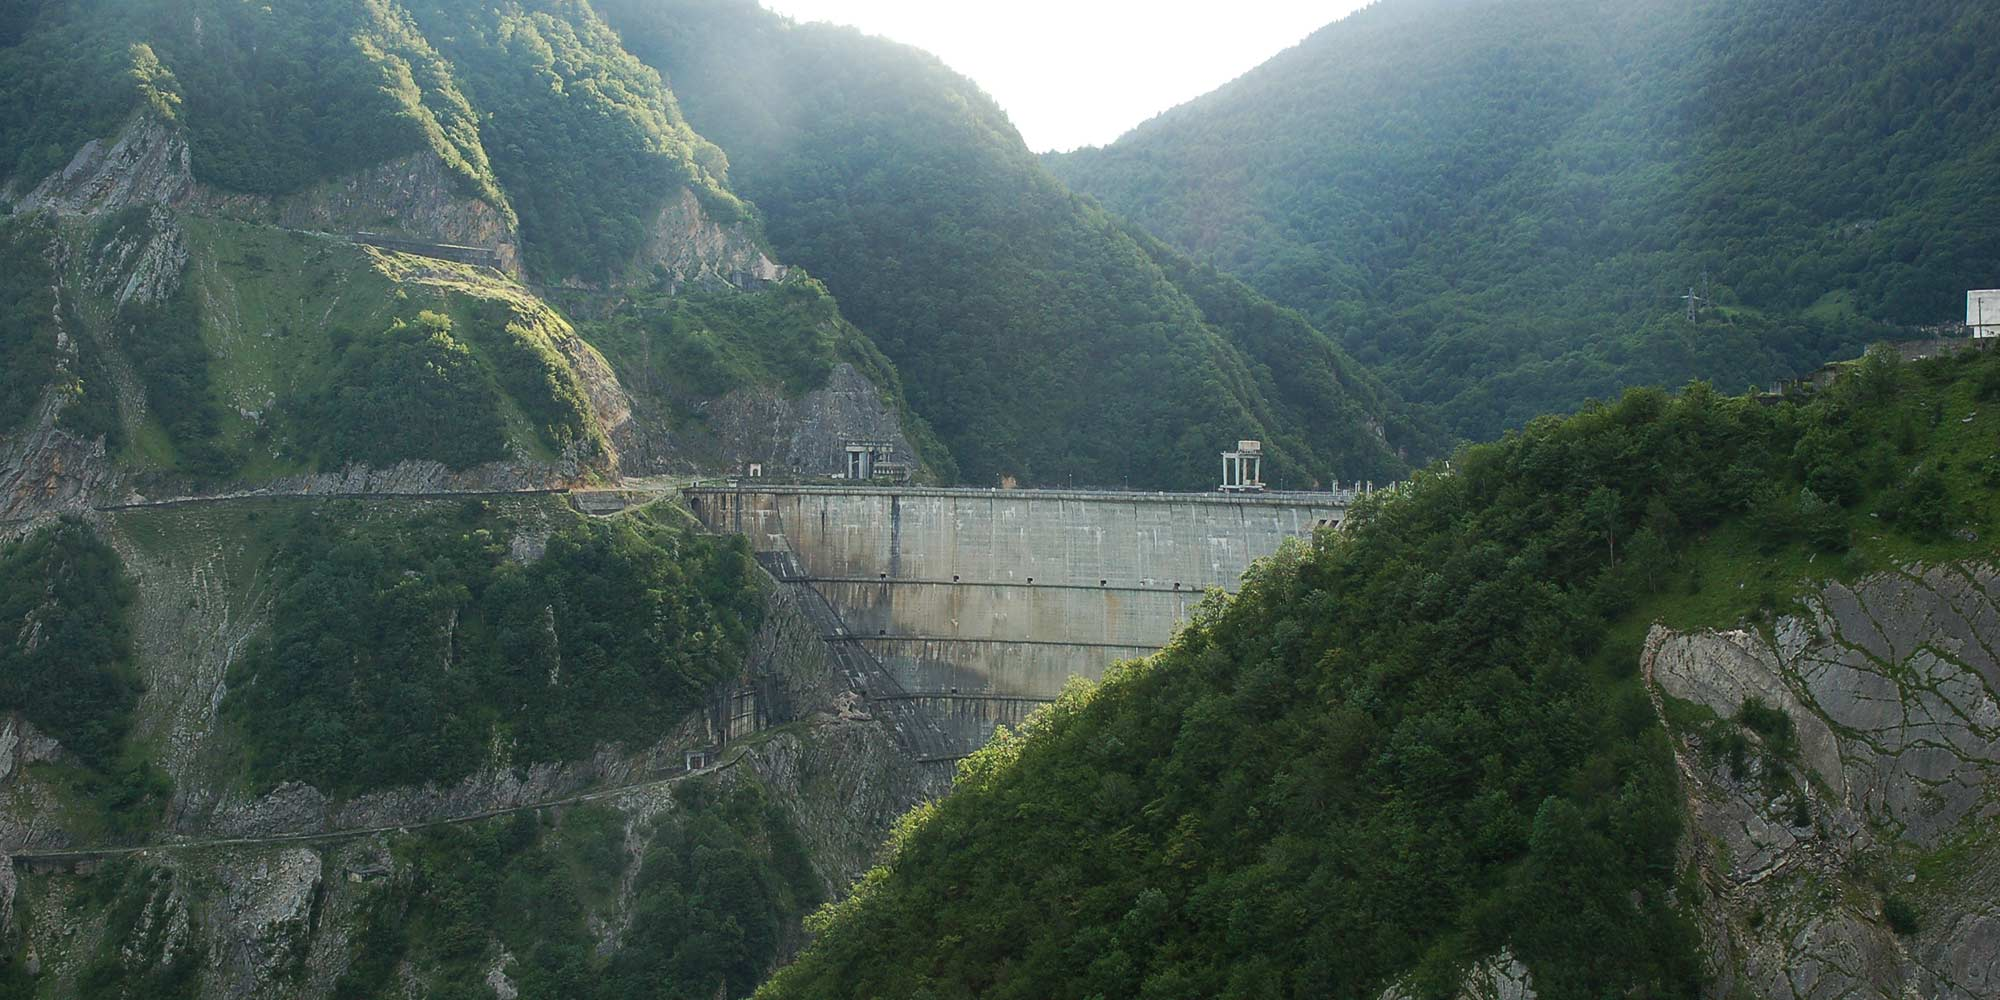 A dam construction visible between tall green mountains in Georgia.